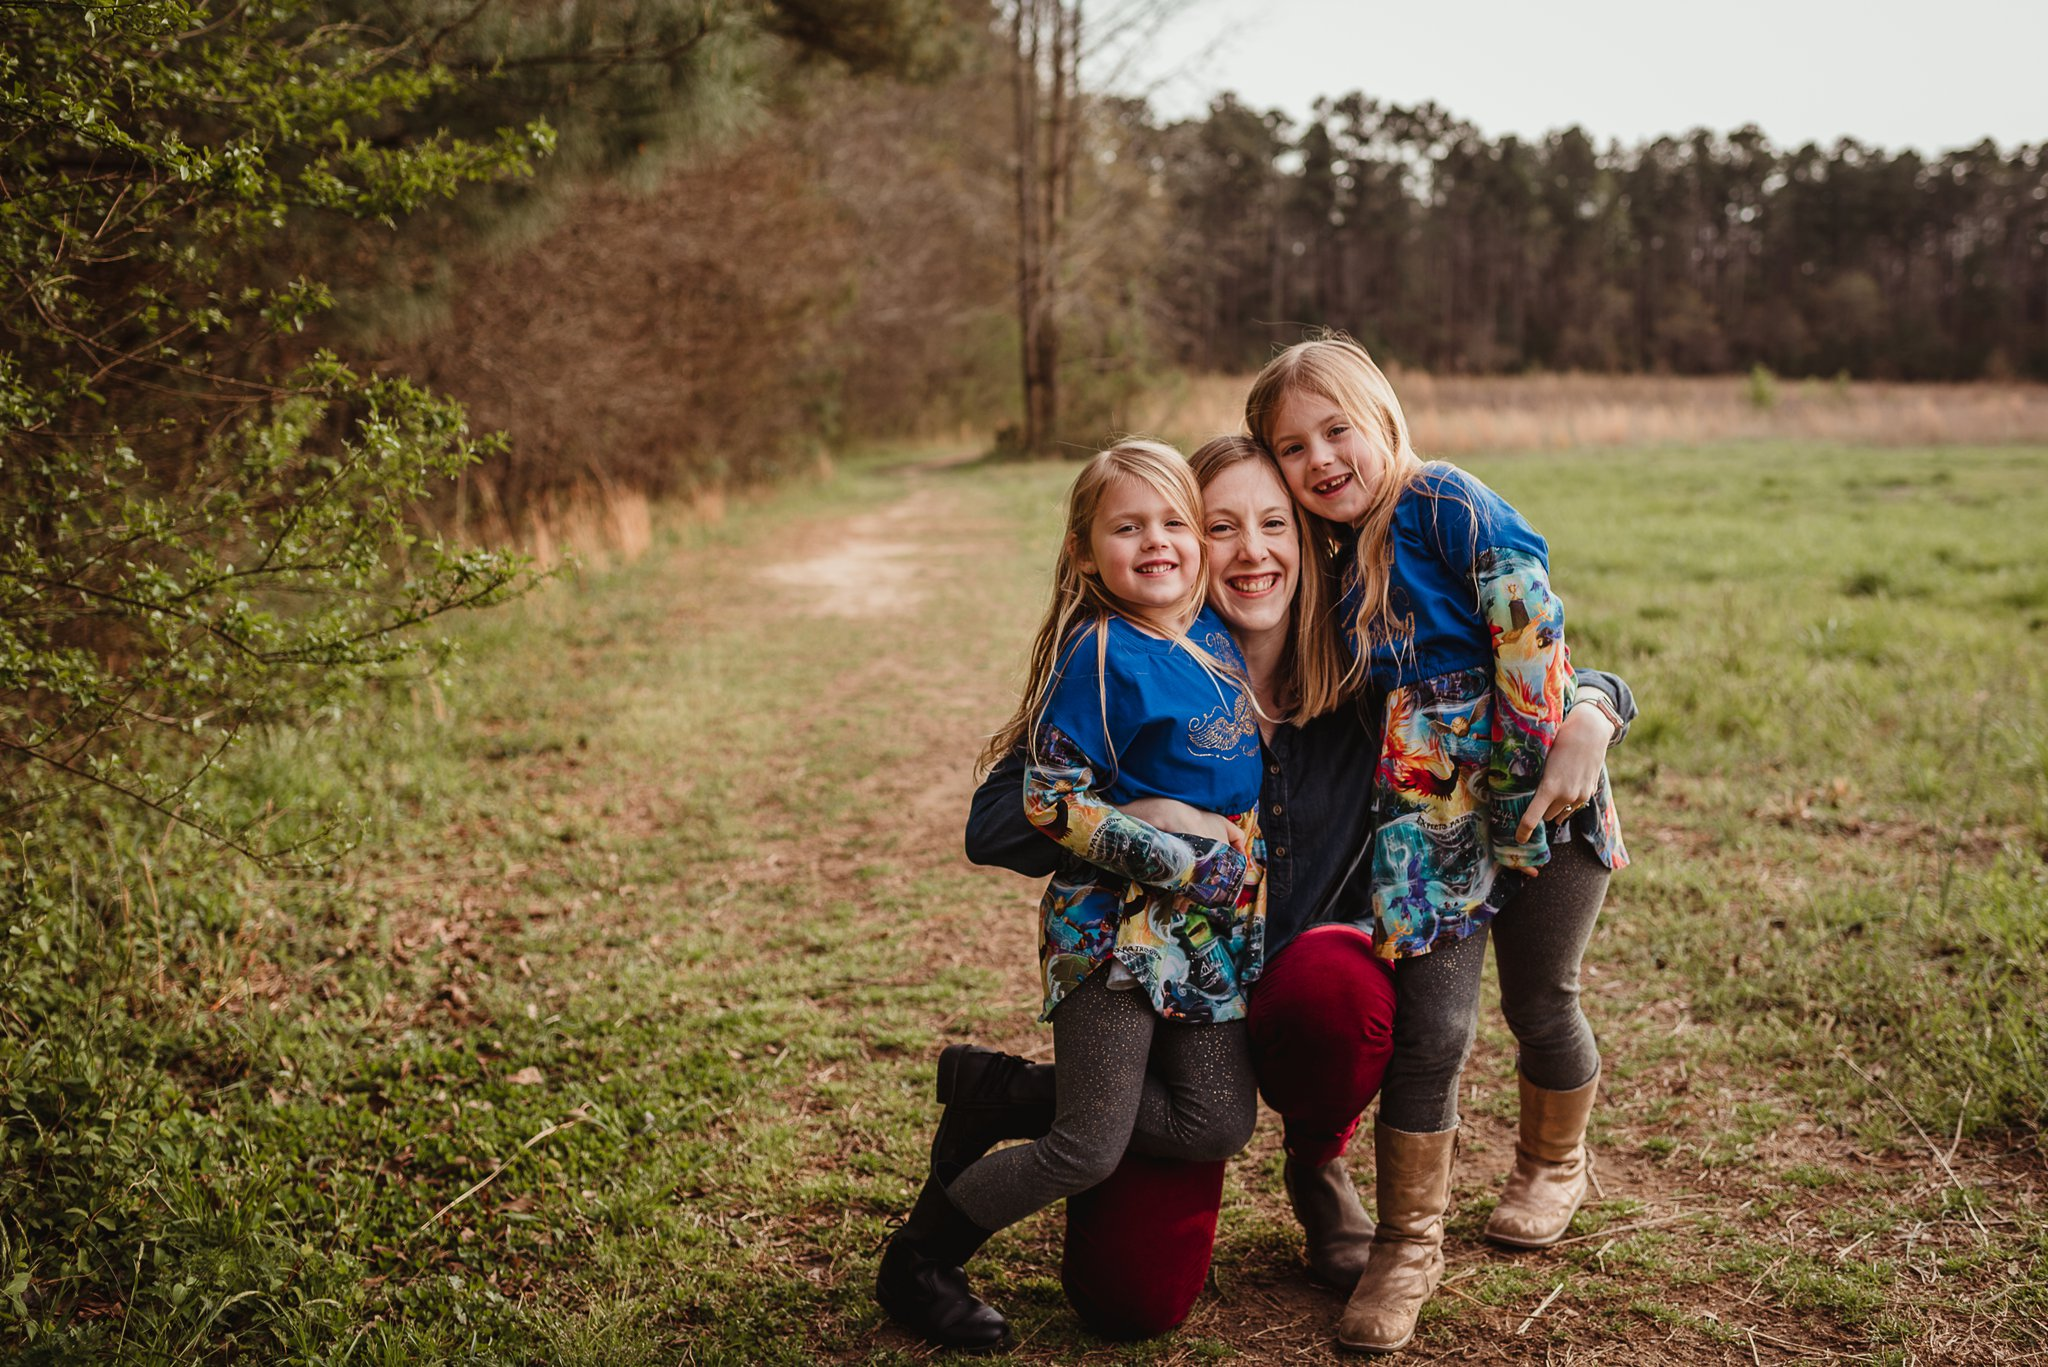 The daughters sit close with their mom during their family photo session with Rose Trail Images in Wake Forest, North Carolina.